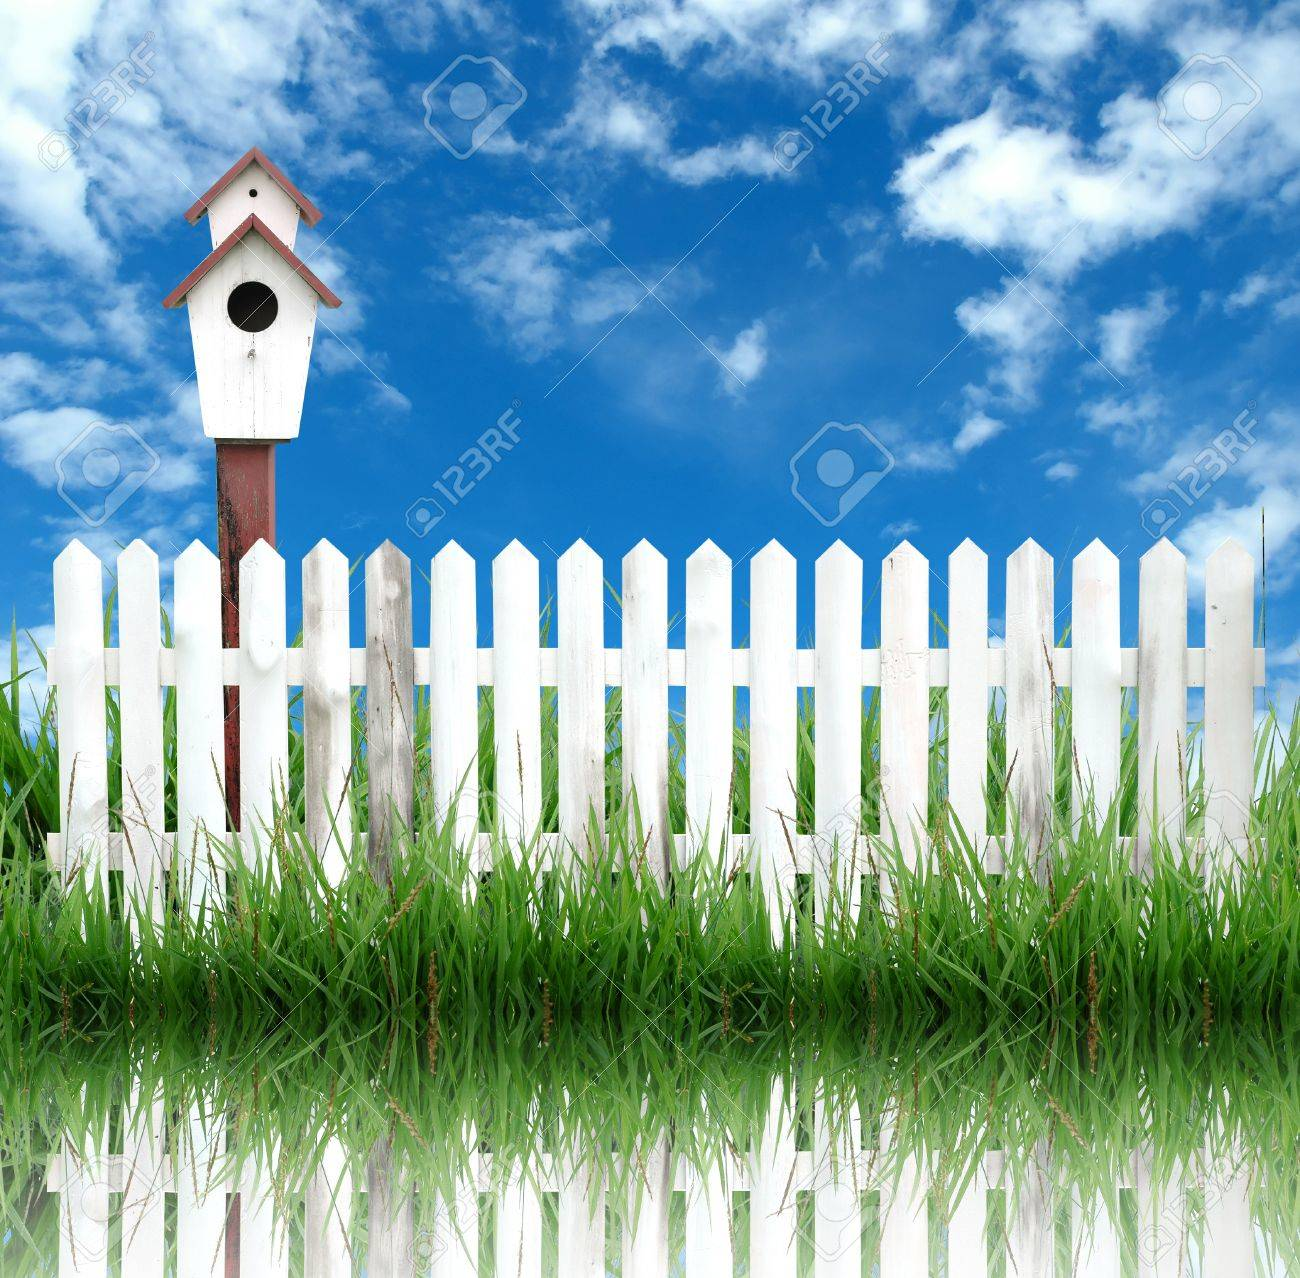 birdhouse with white fence and blue sky Stock Photo - 8393239